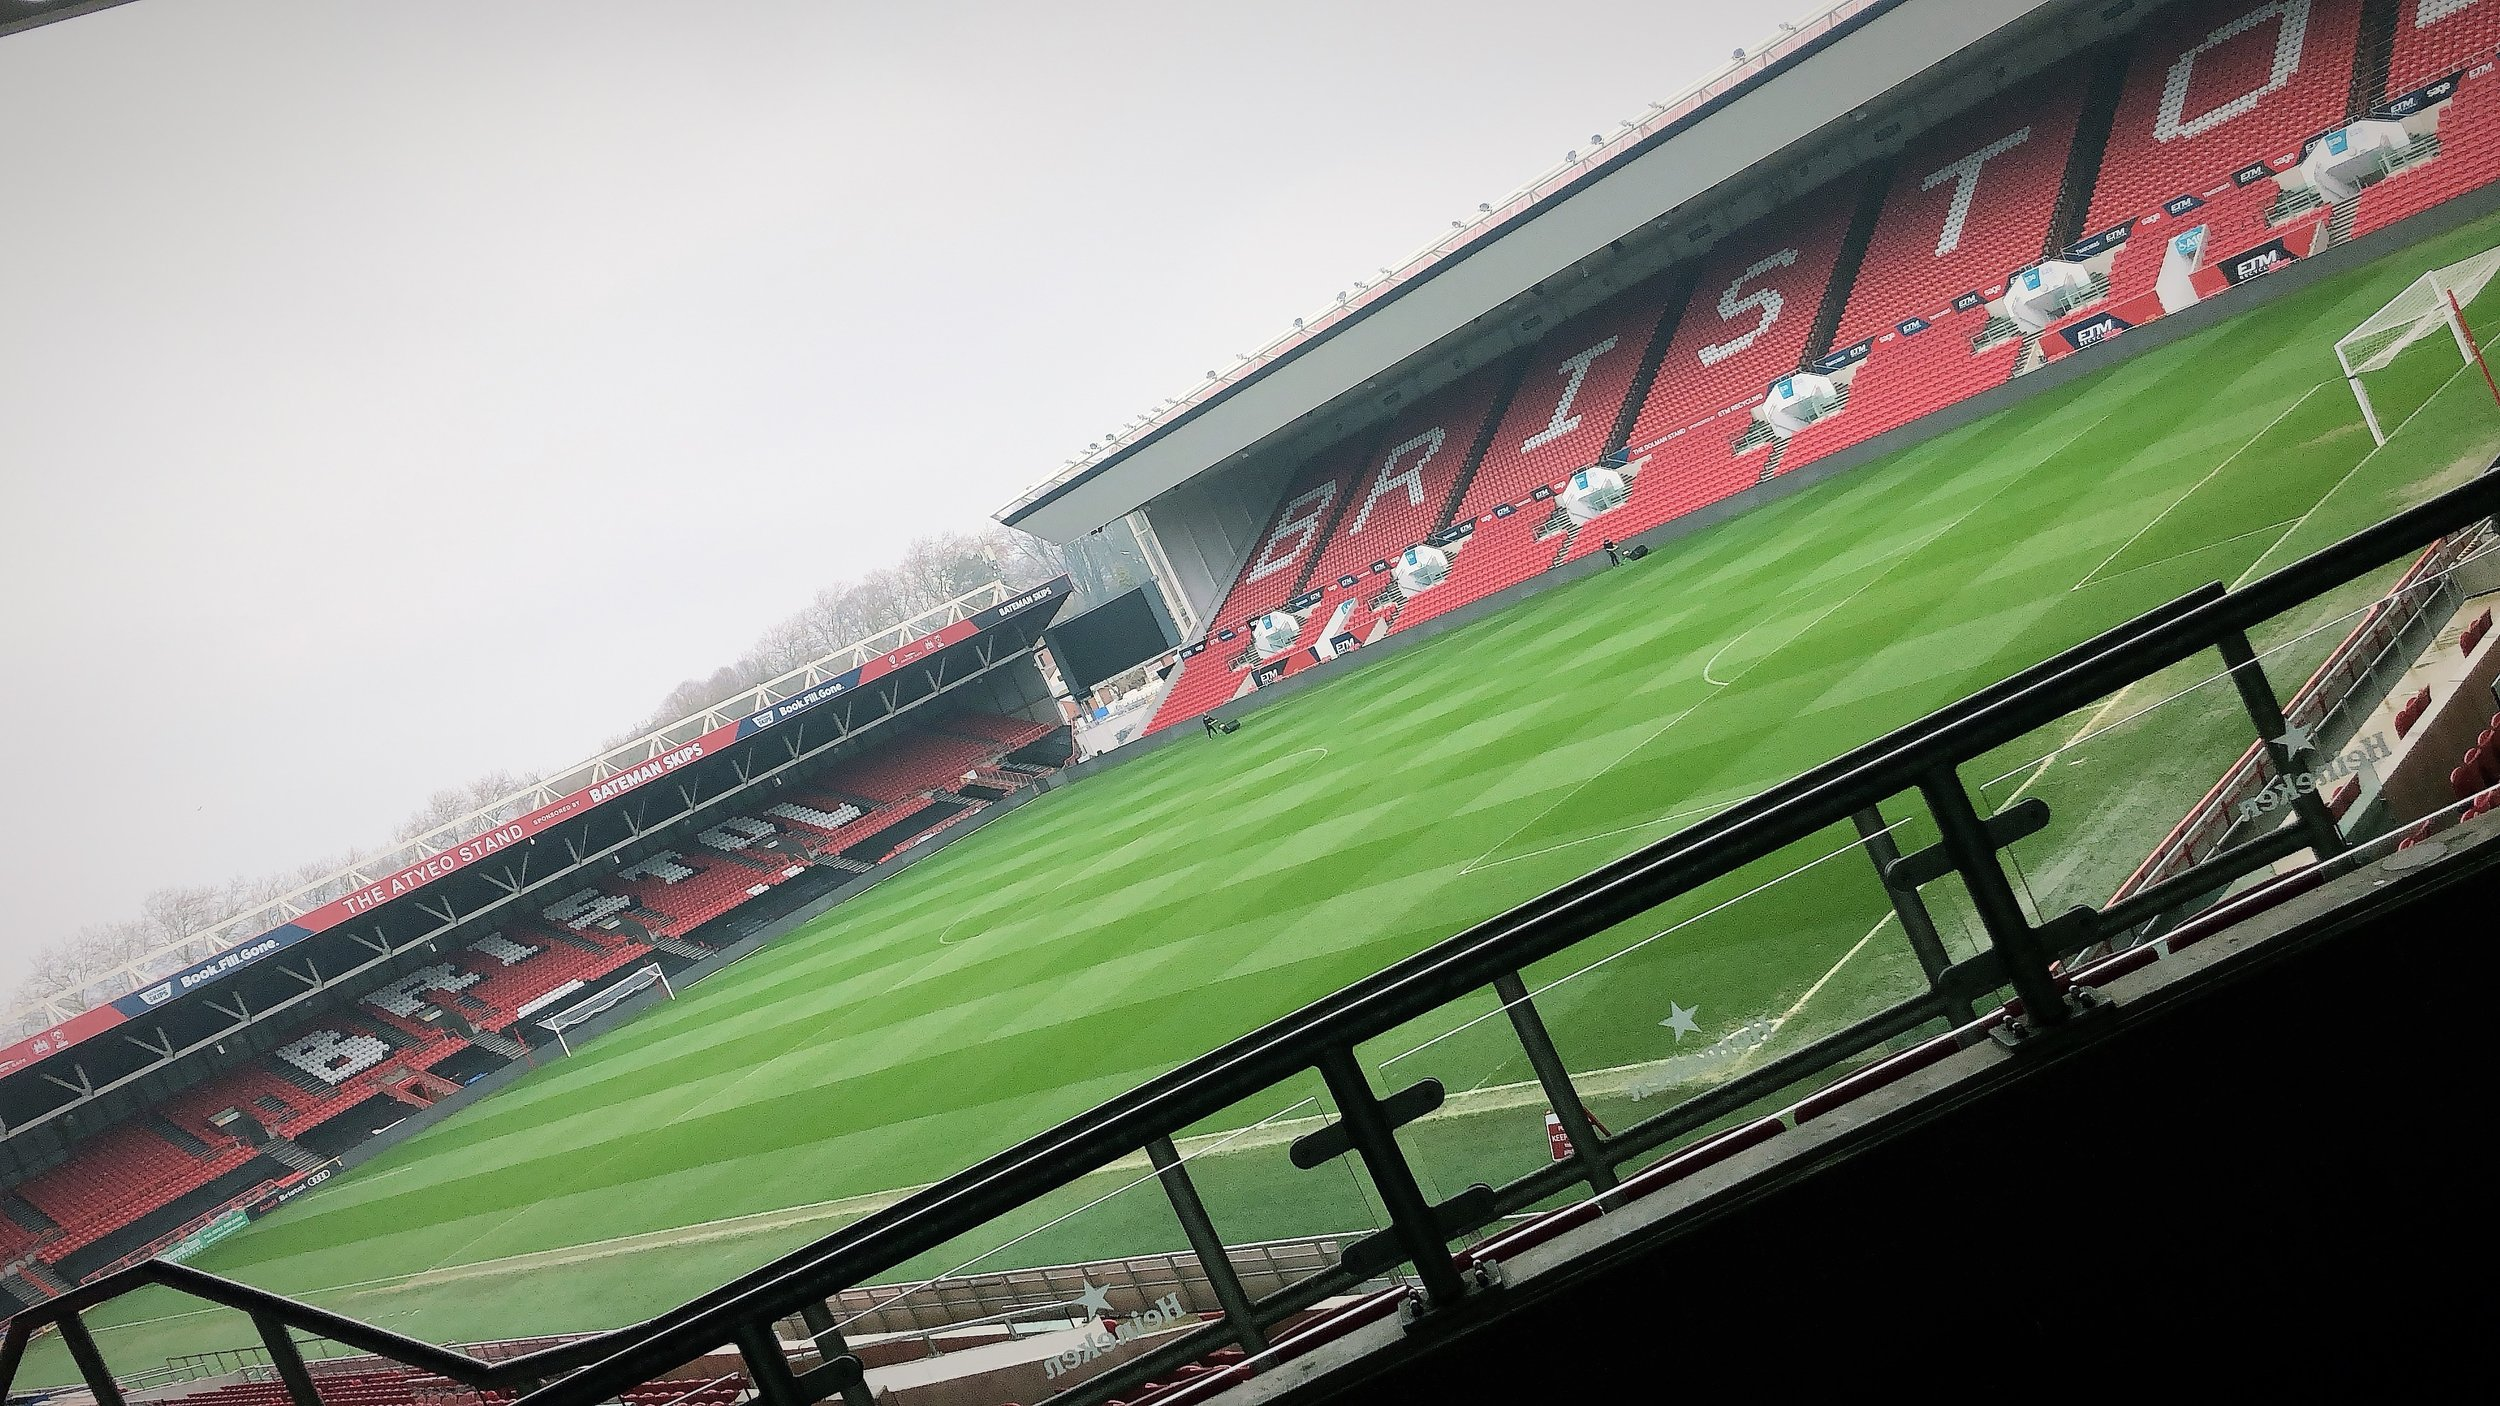 It was nice to see  Ashton Gate Stadium  from a different angle for a change!